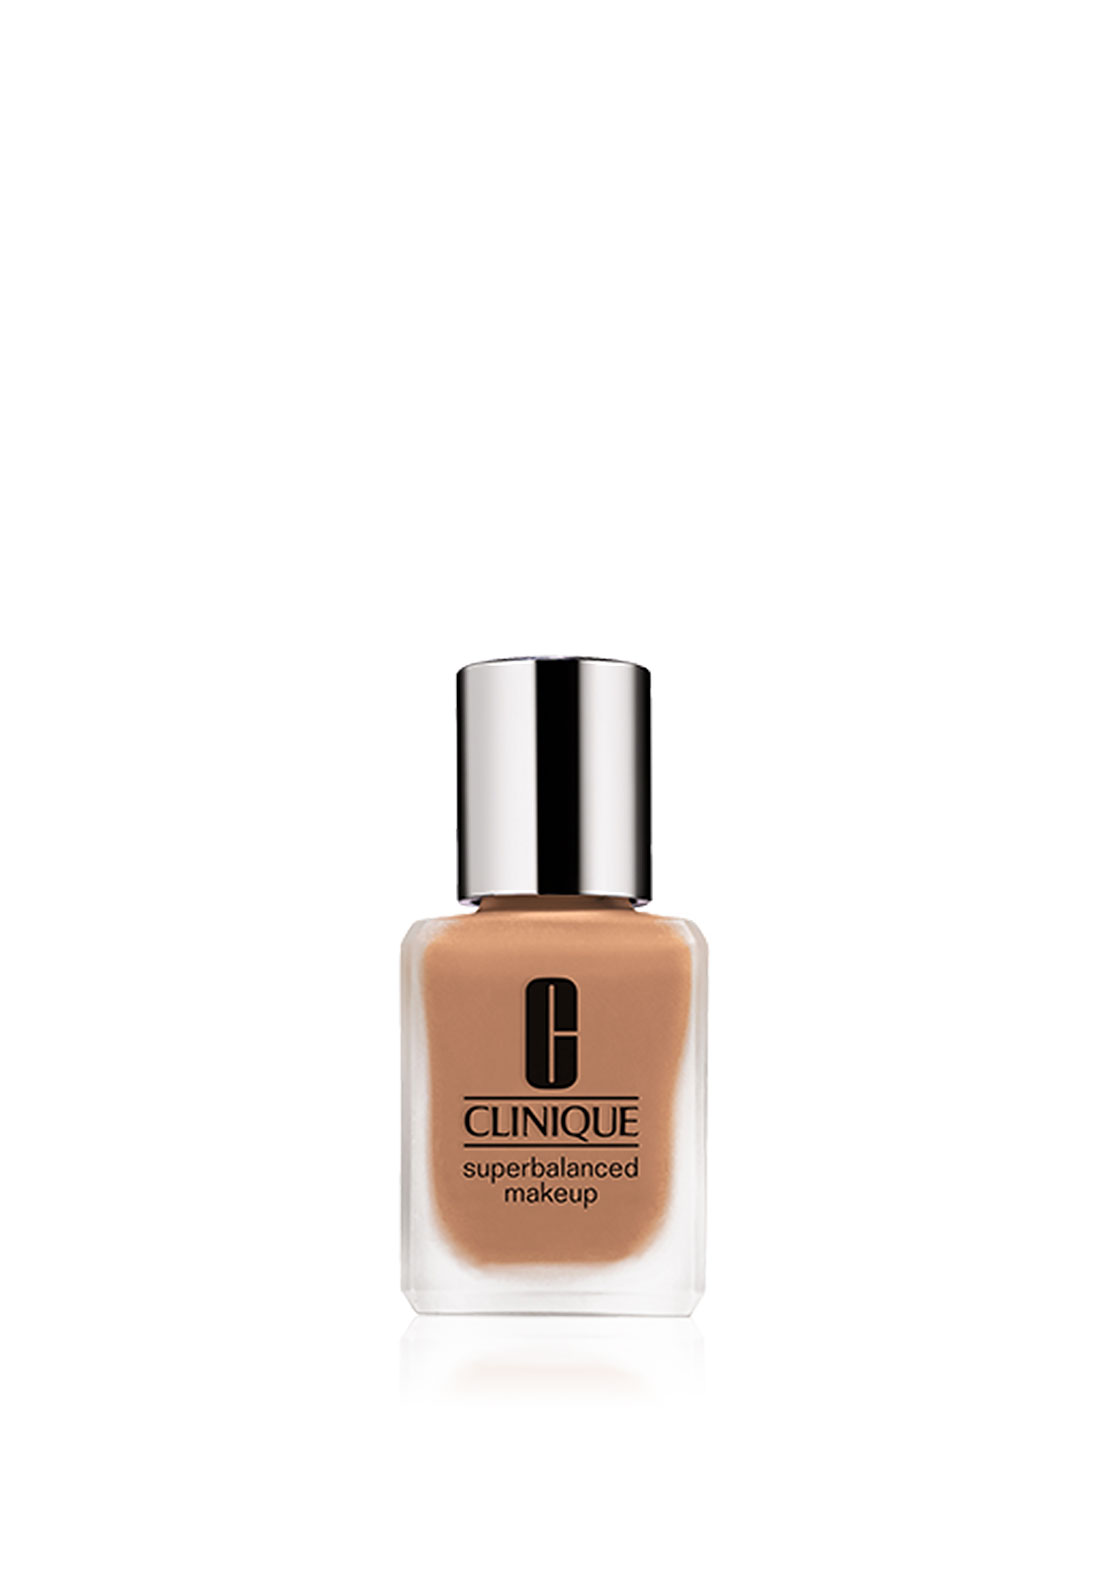 Clinique Superbalanced Make Up Foundation, Sand